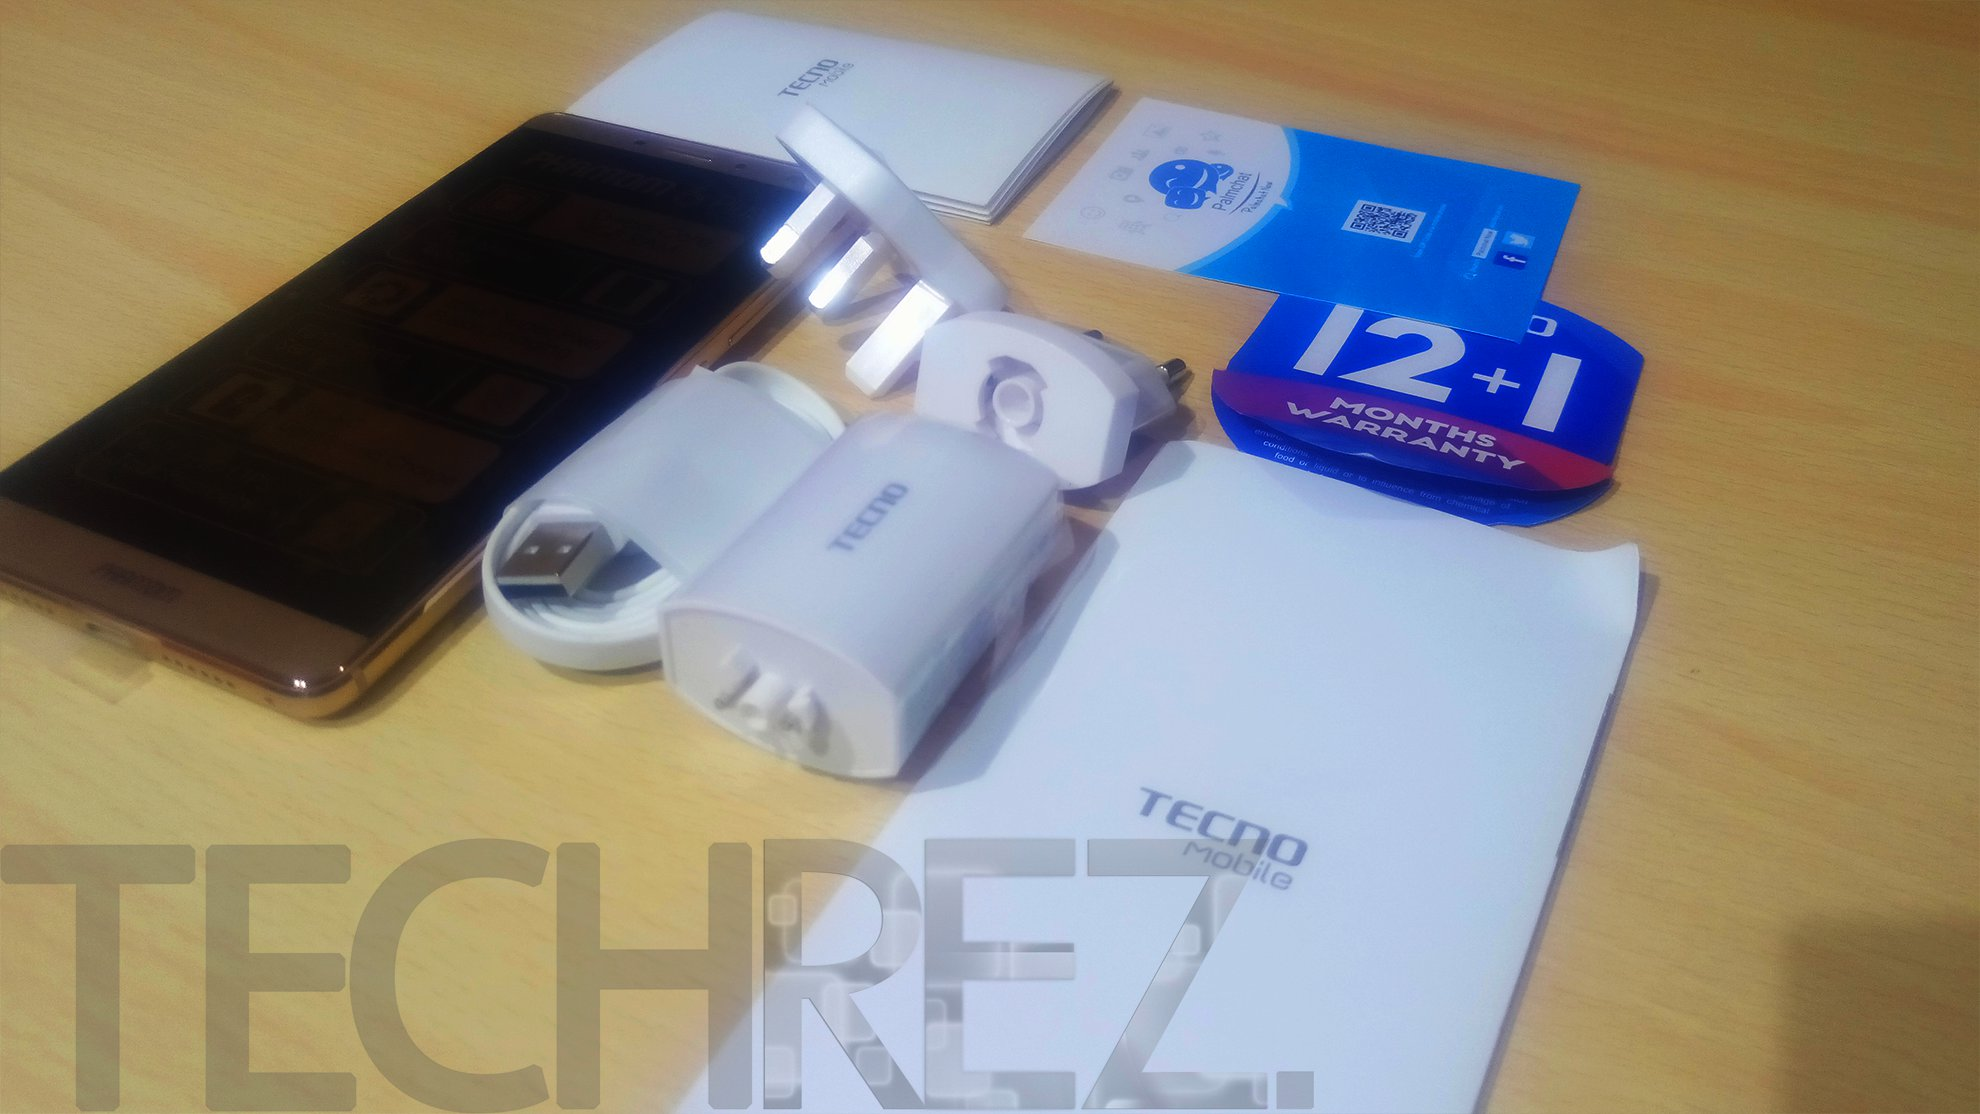 tecno phantom 6 plus specs features